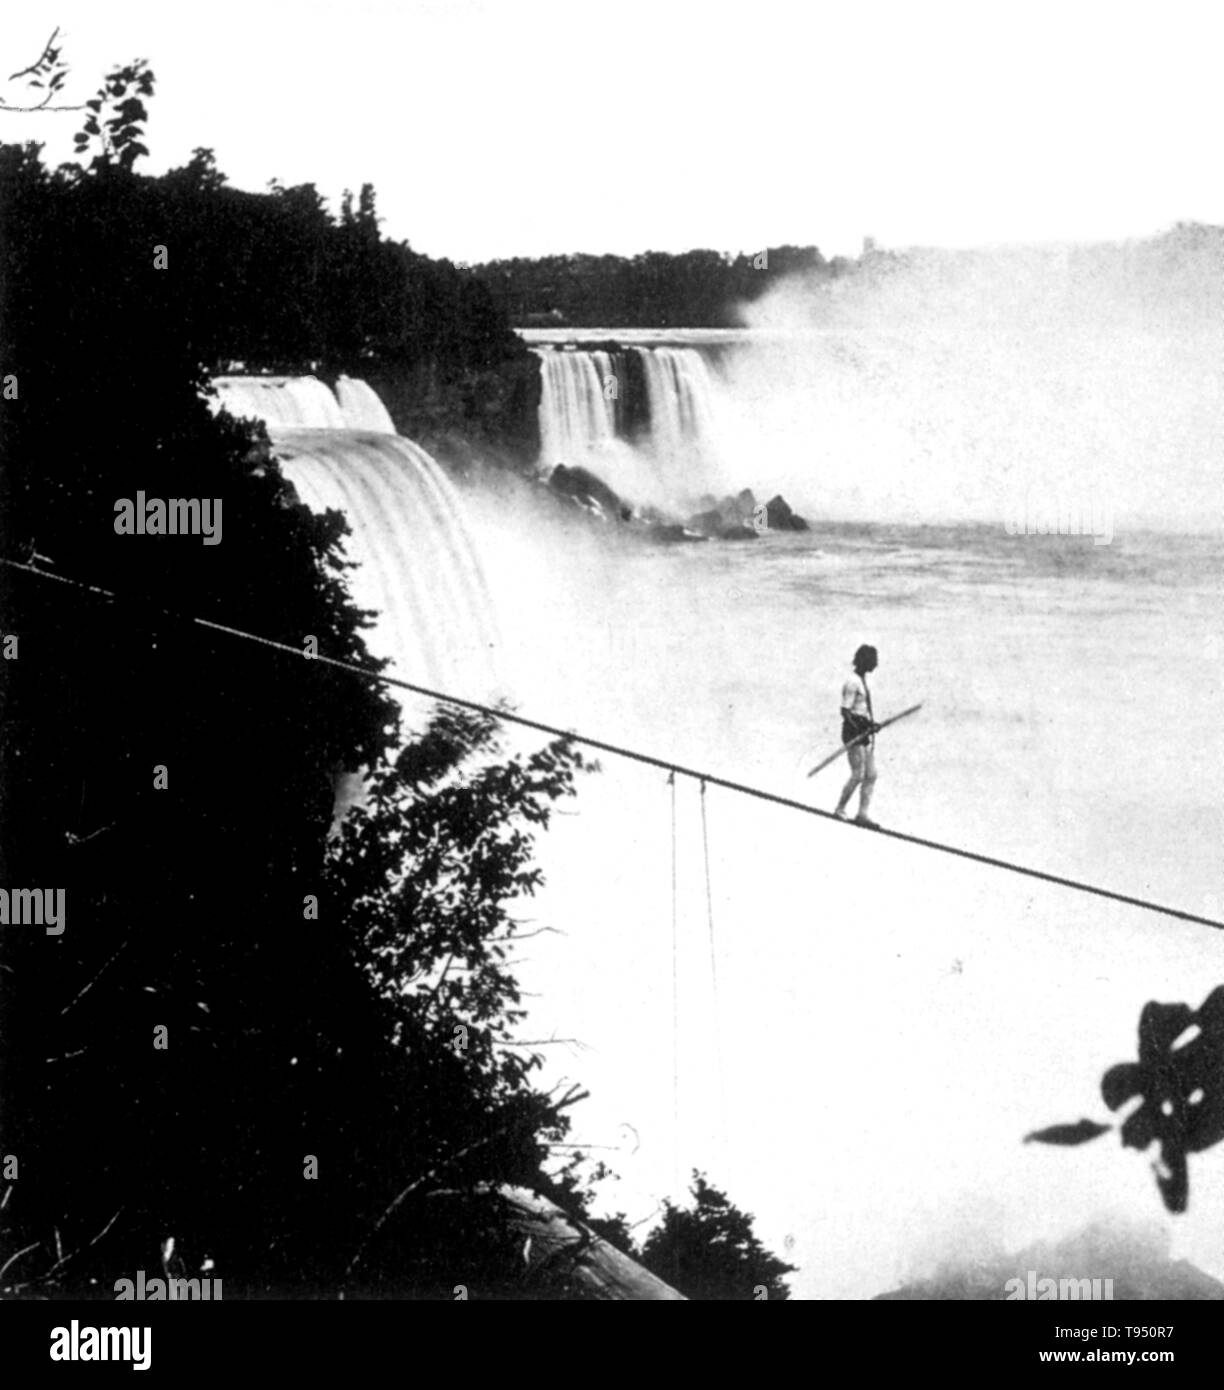 Henry Bellini (1841 - 1888) was an English tightrope walker. In 1873, at the age of 32, he went to Niagara Falls. On August 25th 1873, he made his first tight rope walk across the Niagara River using a 1,500 foot long - 2.5 inch diameter rope weighing 2,500 pounds. He combined a tight rope walk with a leap into the churning river below. He tried crossing using a 48 pound - 22 foot long balance pole. Following his leap into the water, Bellini was picked up by an awaiting boat. He made three such leaps during 1873. In the winter of 1886, he jumped from the Upper Suspension Bridge. He was hauled  - Stock Image